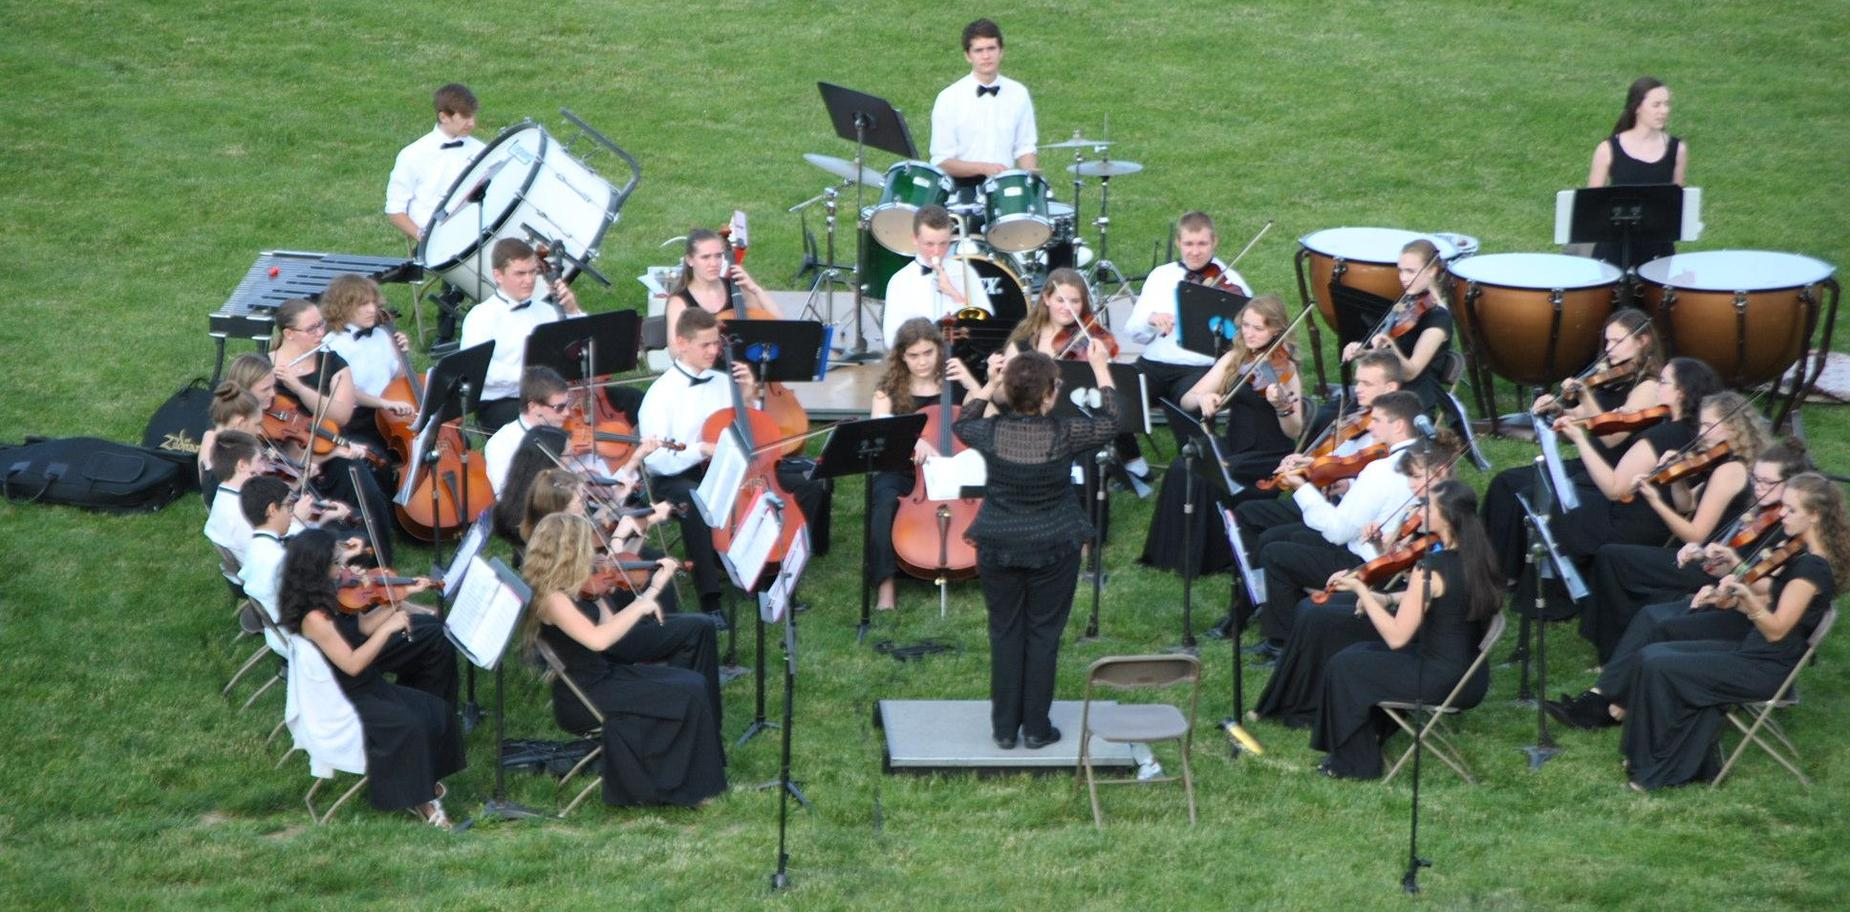 KHS Orchestra at Graduation